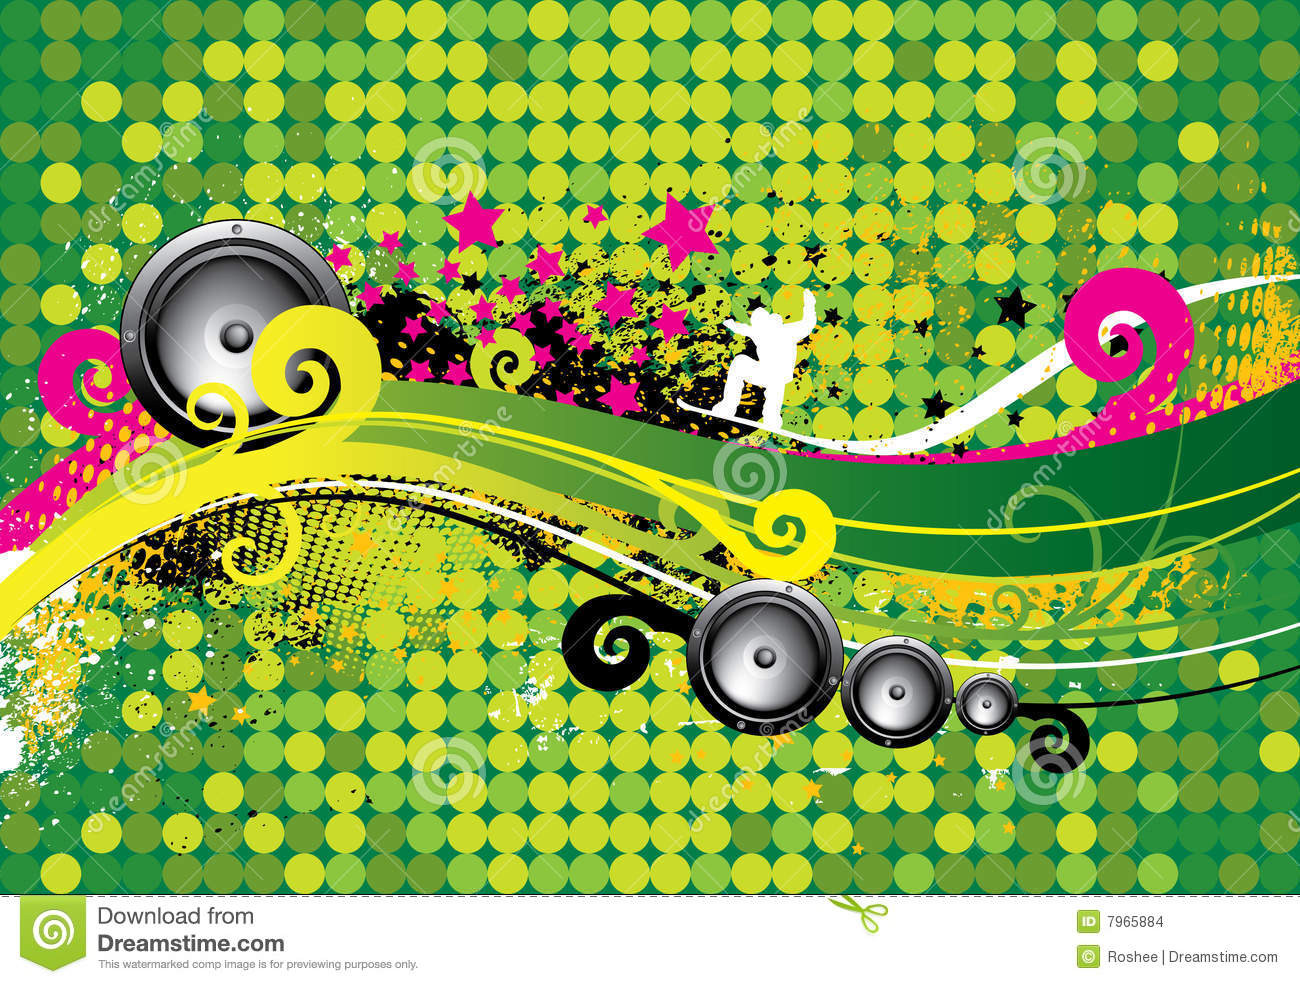 Music Abstract Backgrounds: Abstract Music Background Stock Vector. Image Of Techno